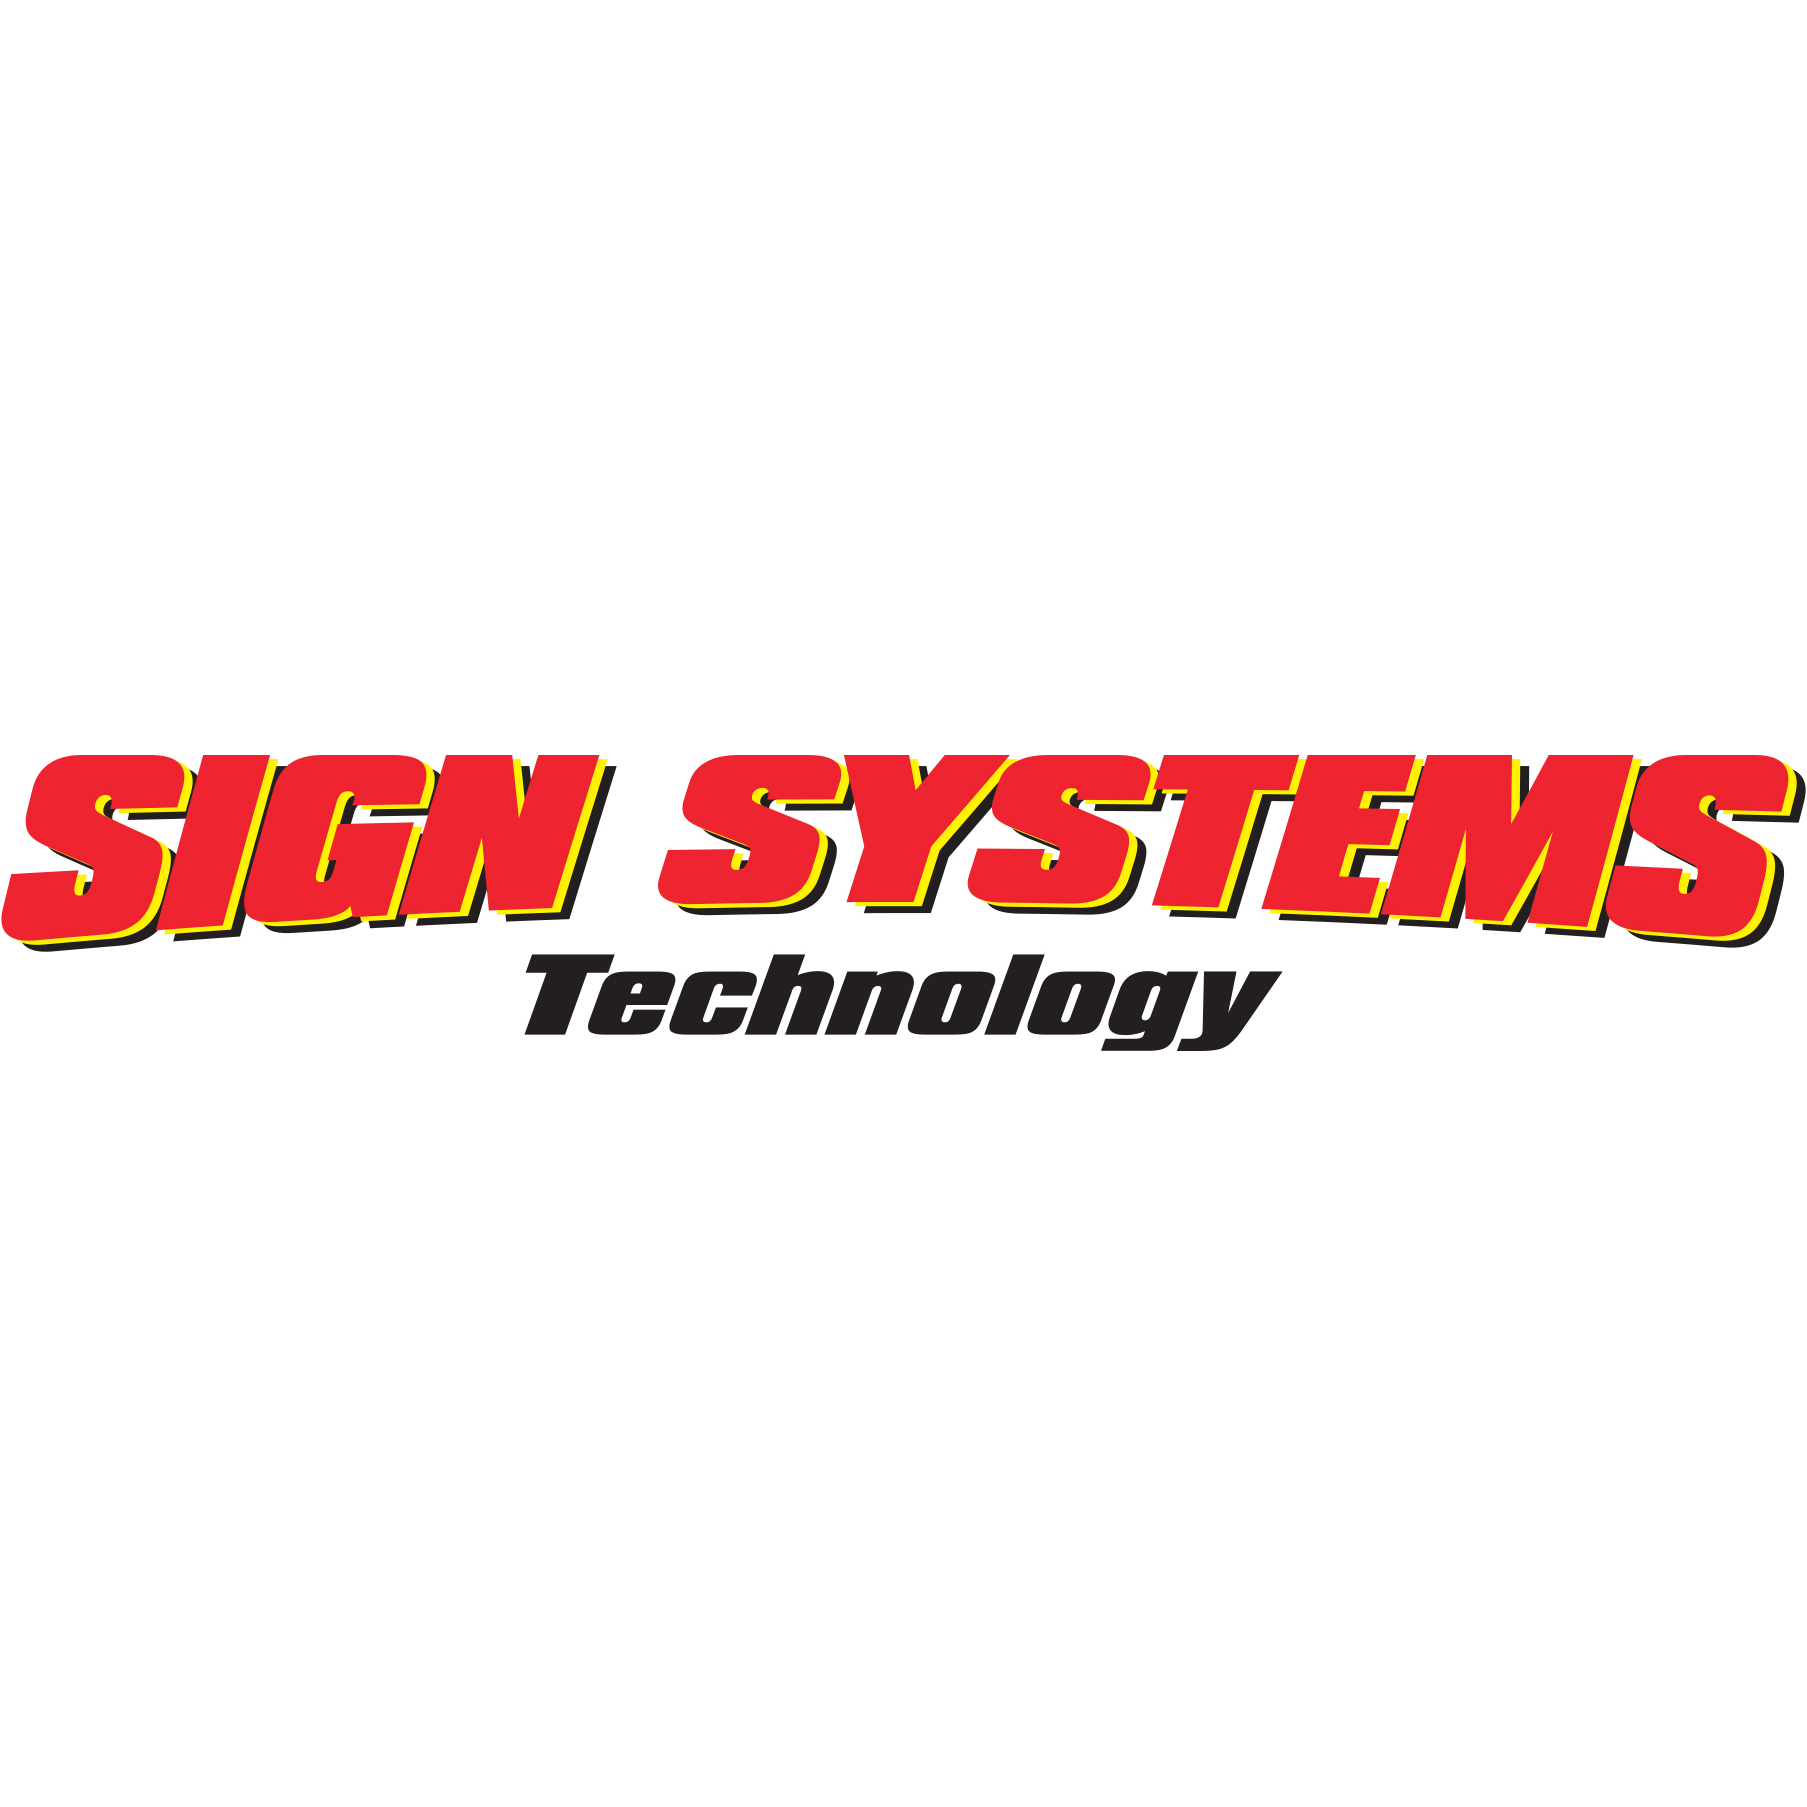 Sign Systems Technology